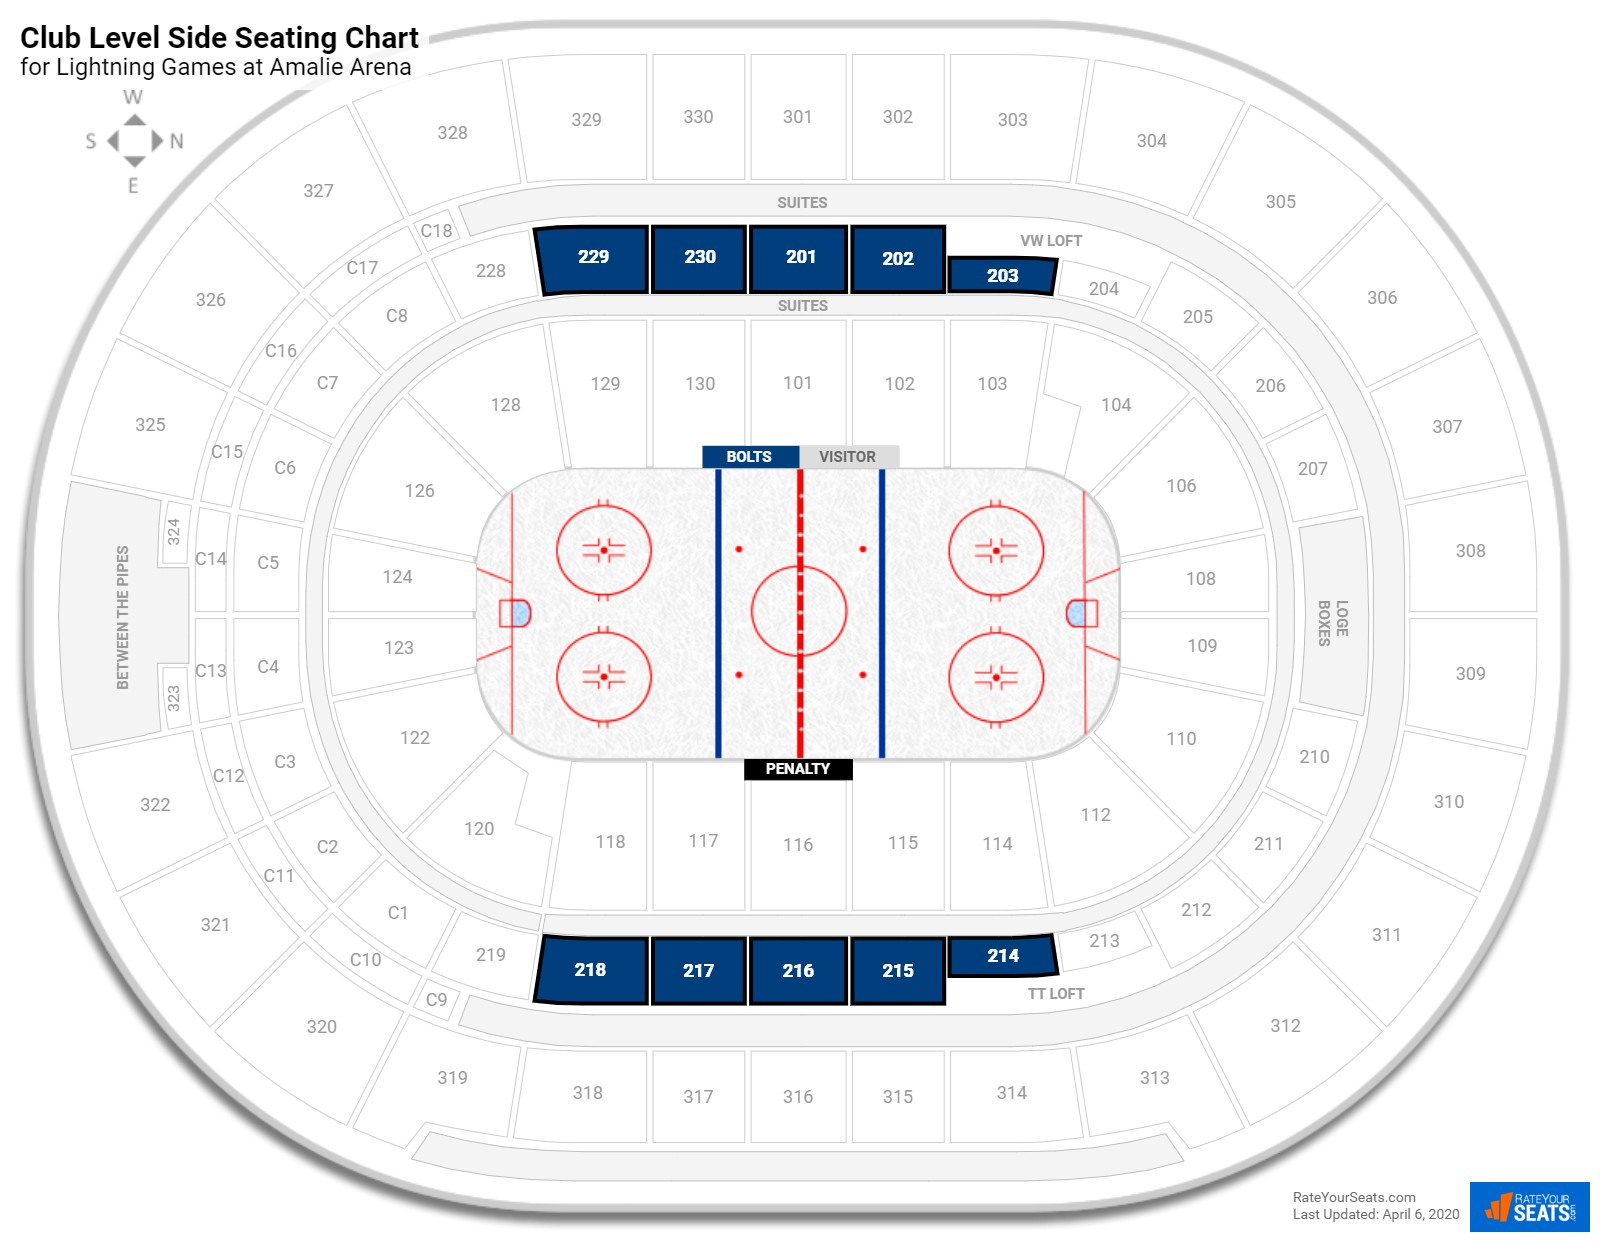 Amalie Arena Club Level Side seating chart